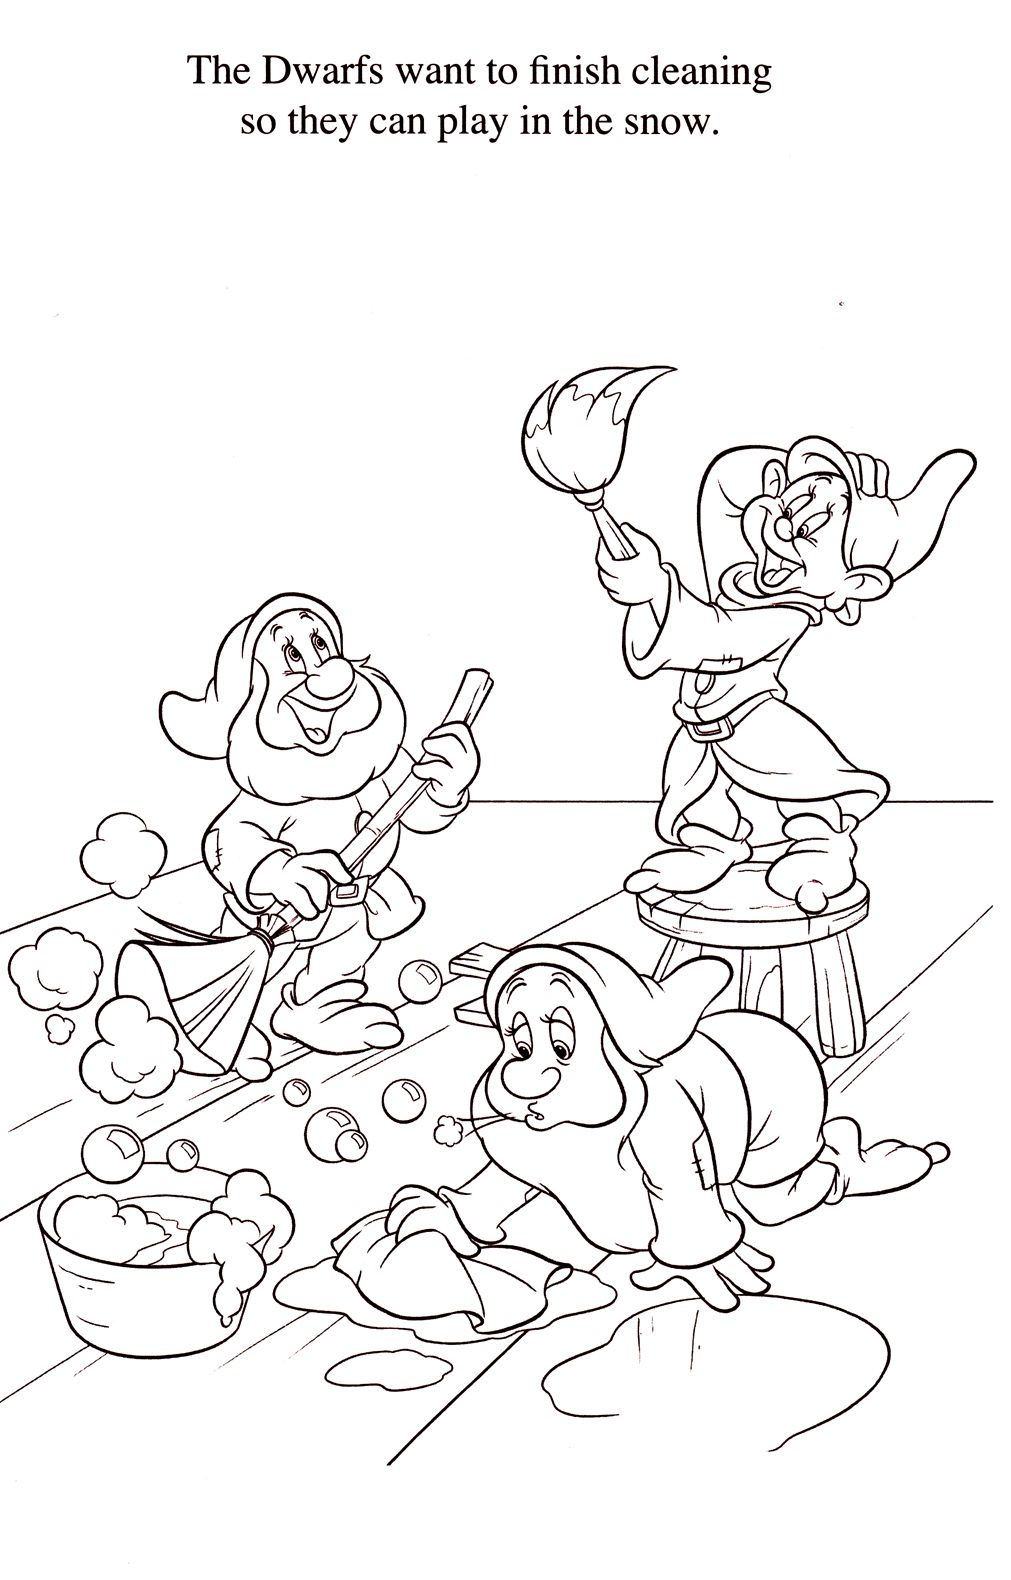 Disney coloring pages shake it up - Disney Coloring Pages Photo